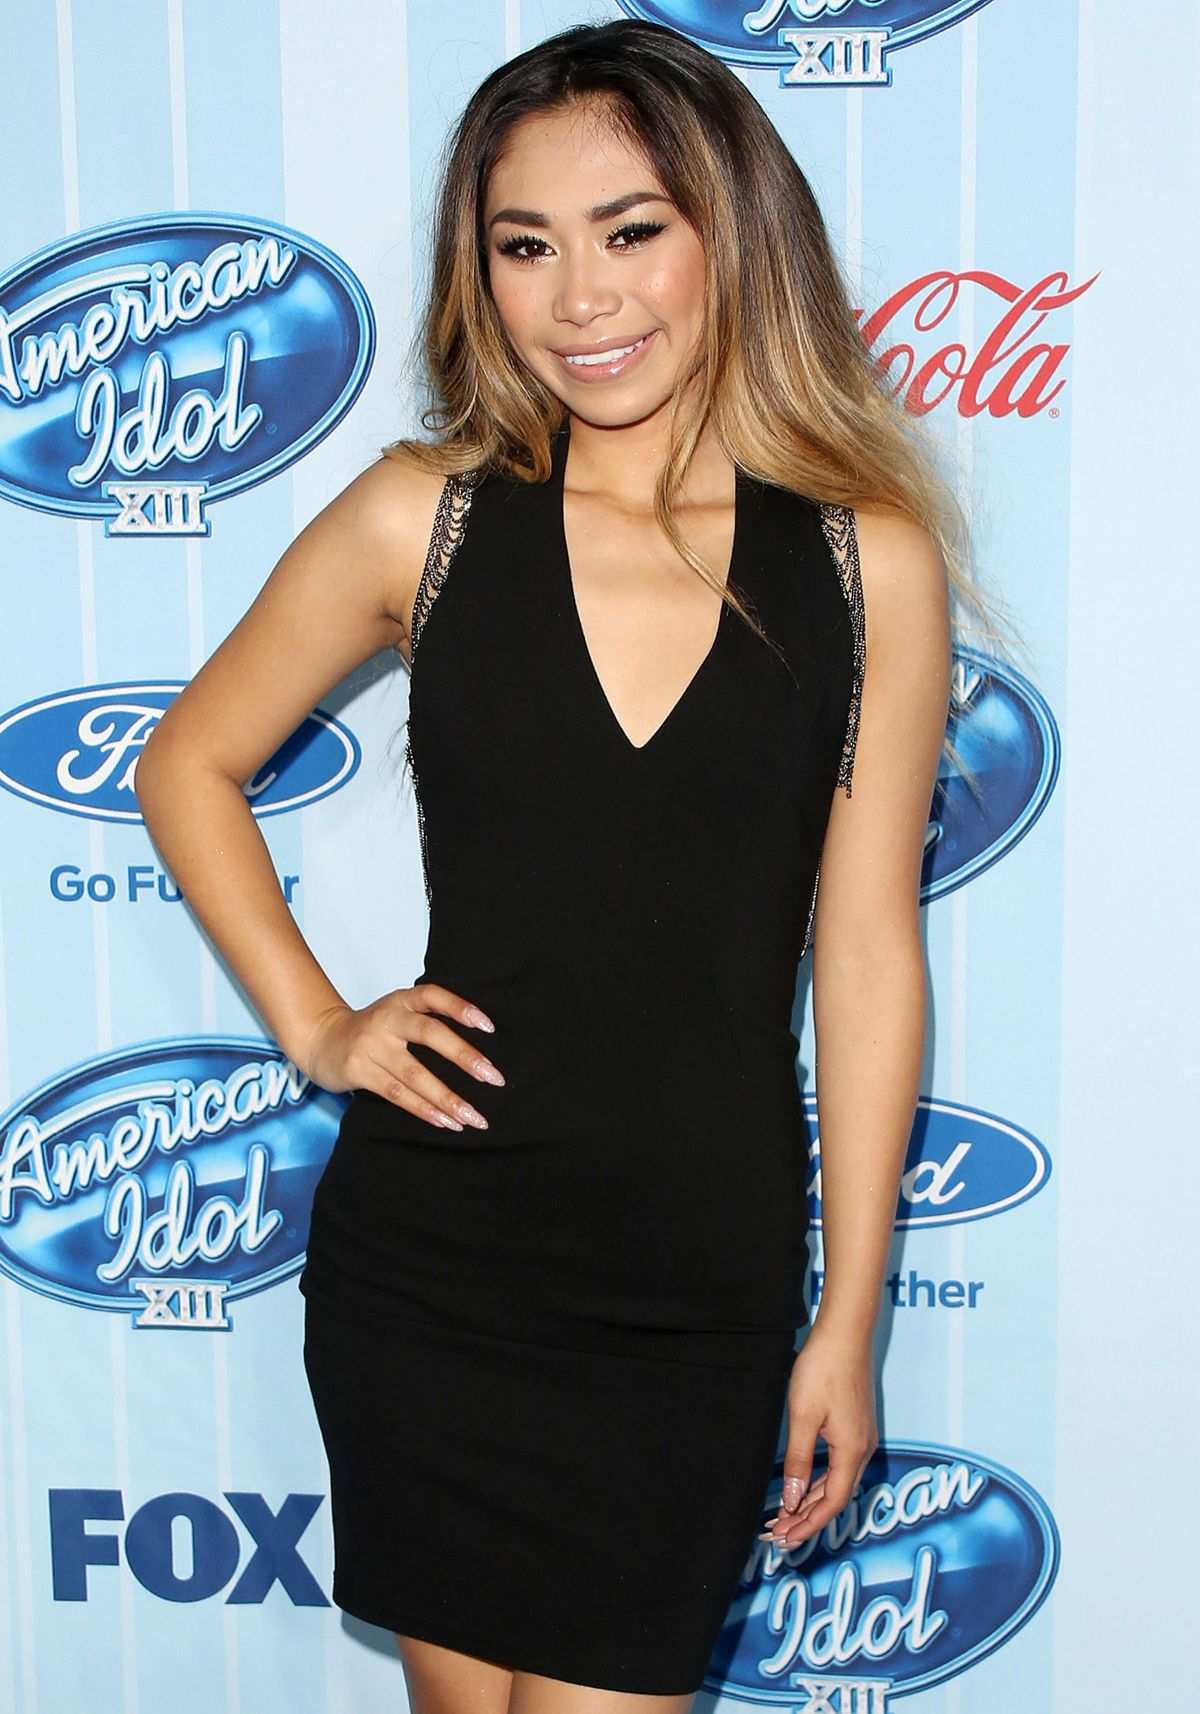 JESSICA SANCHEZ at Fox TCA Party in California